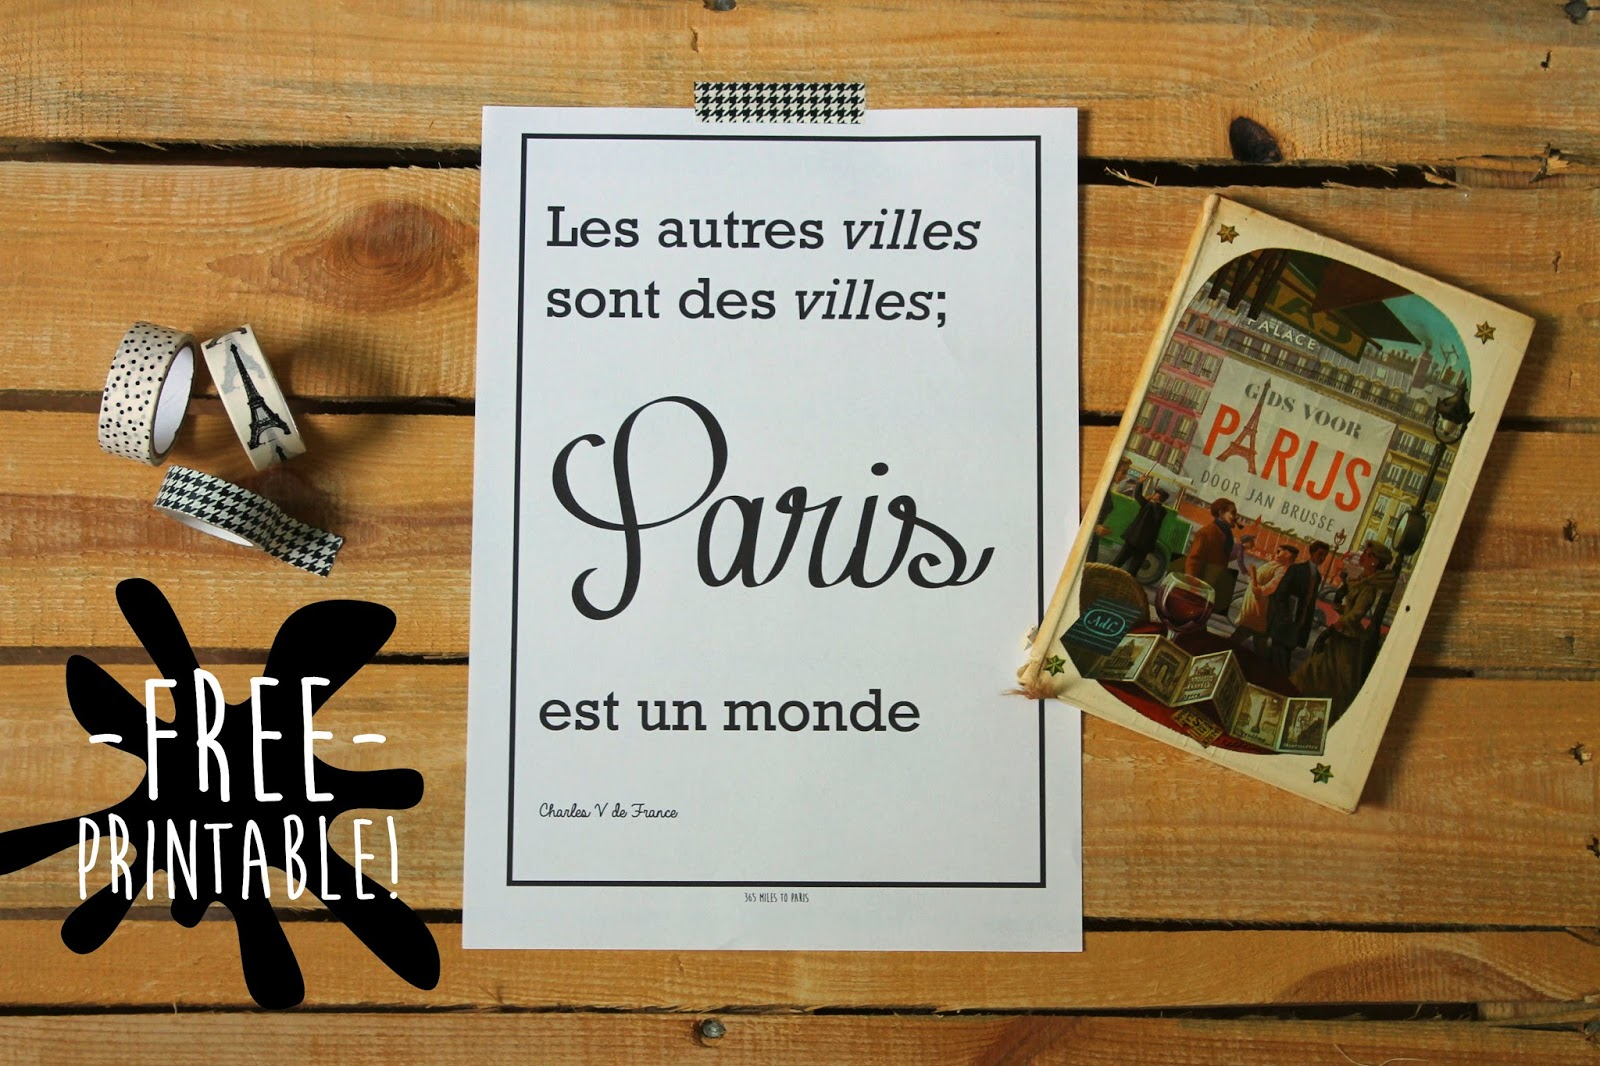 Quotes Aan Muur : Printable hang parijs aan de muur miles to paris